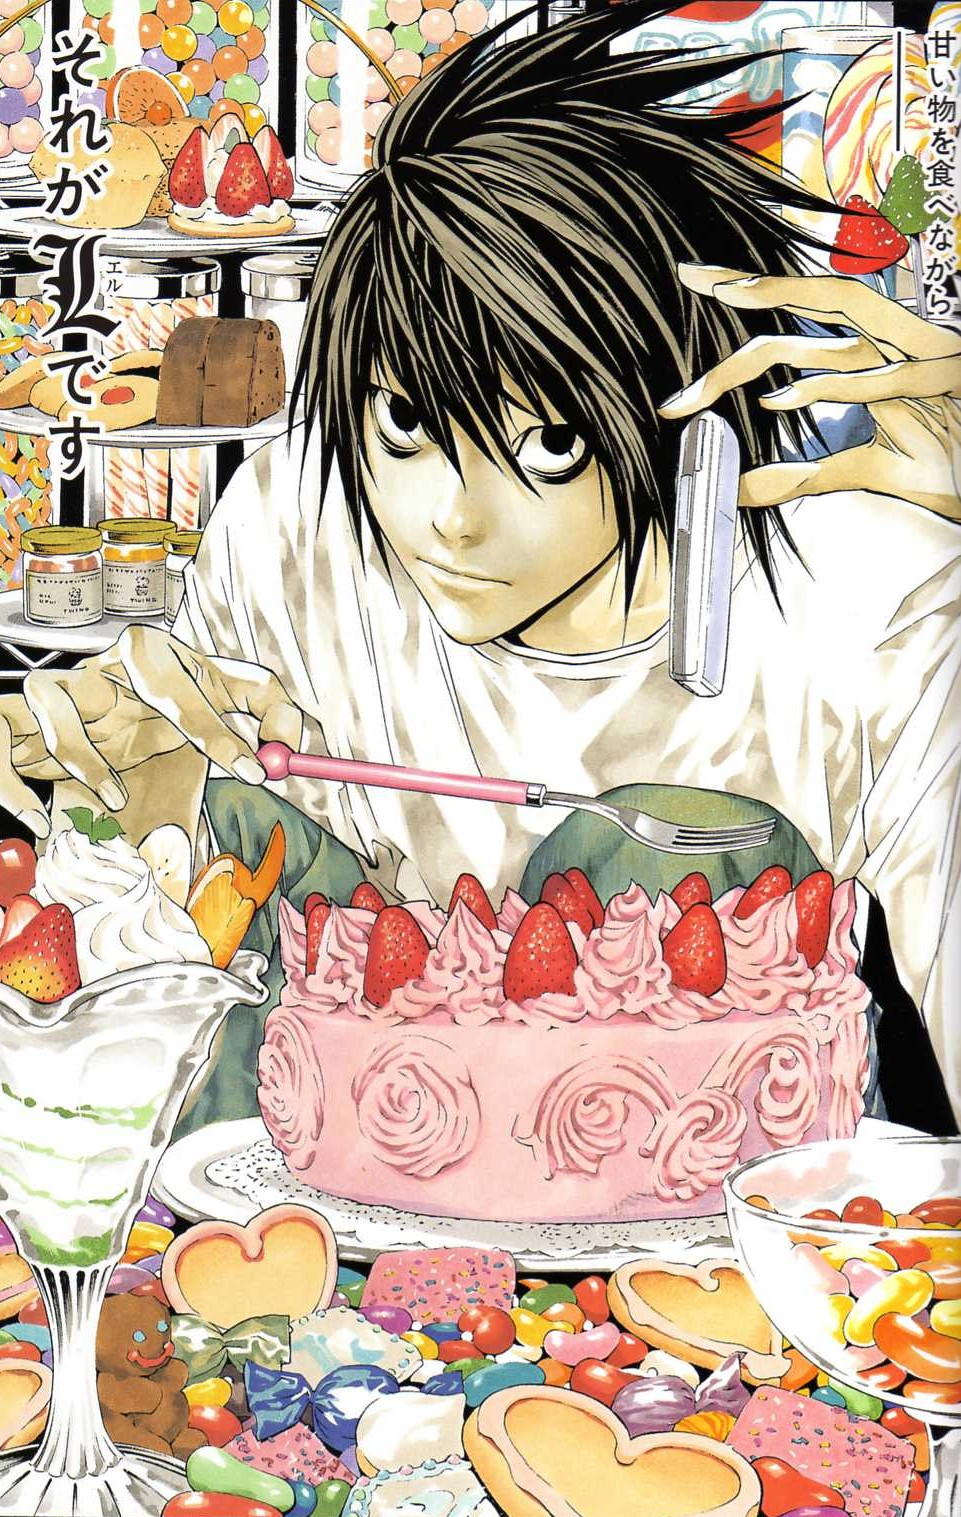 Tags: DEATH NOTE, L Lawliet, Obata Takeshi, Official Art, Mobile Wallpaper